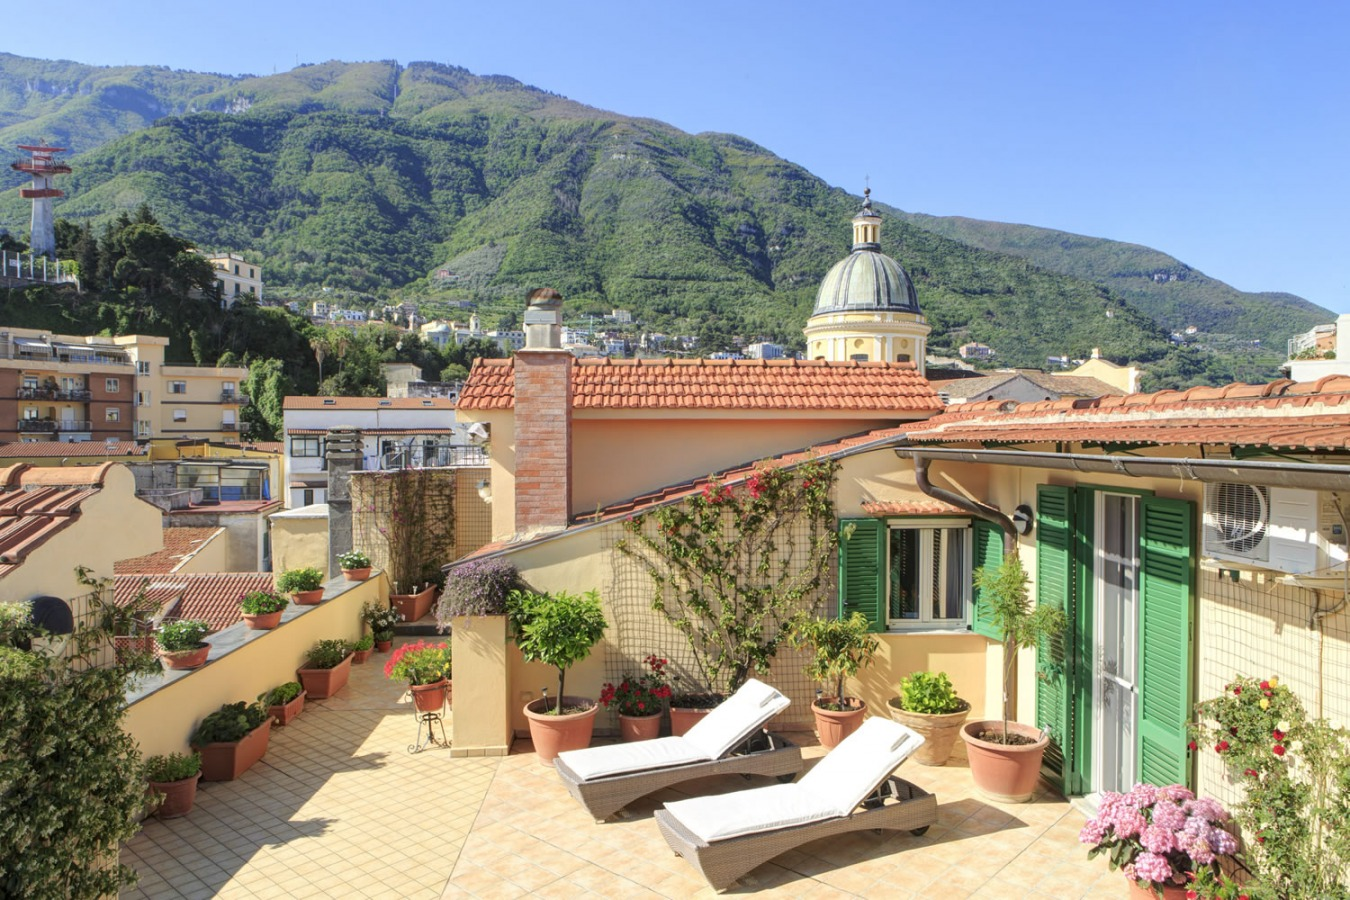 Bed and Breakfast Tetto Fiorito - The Photo gallery